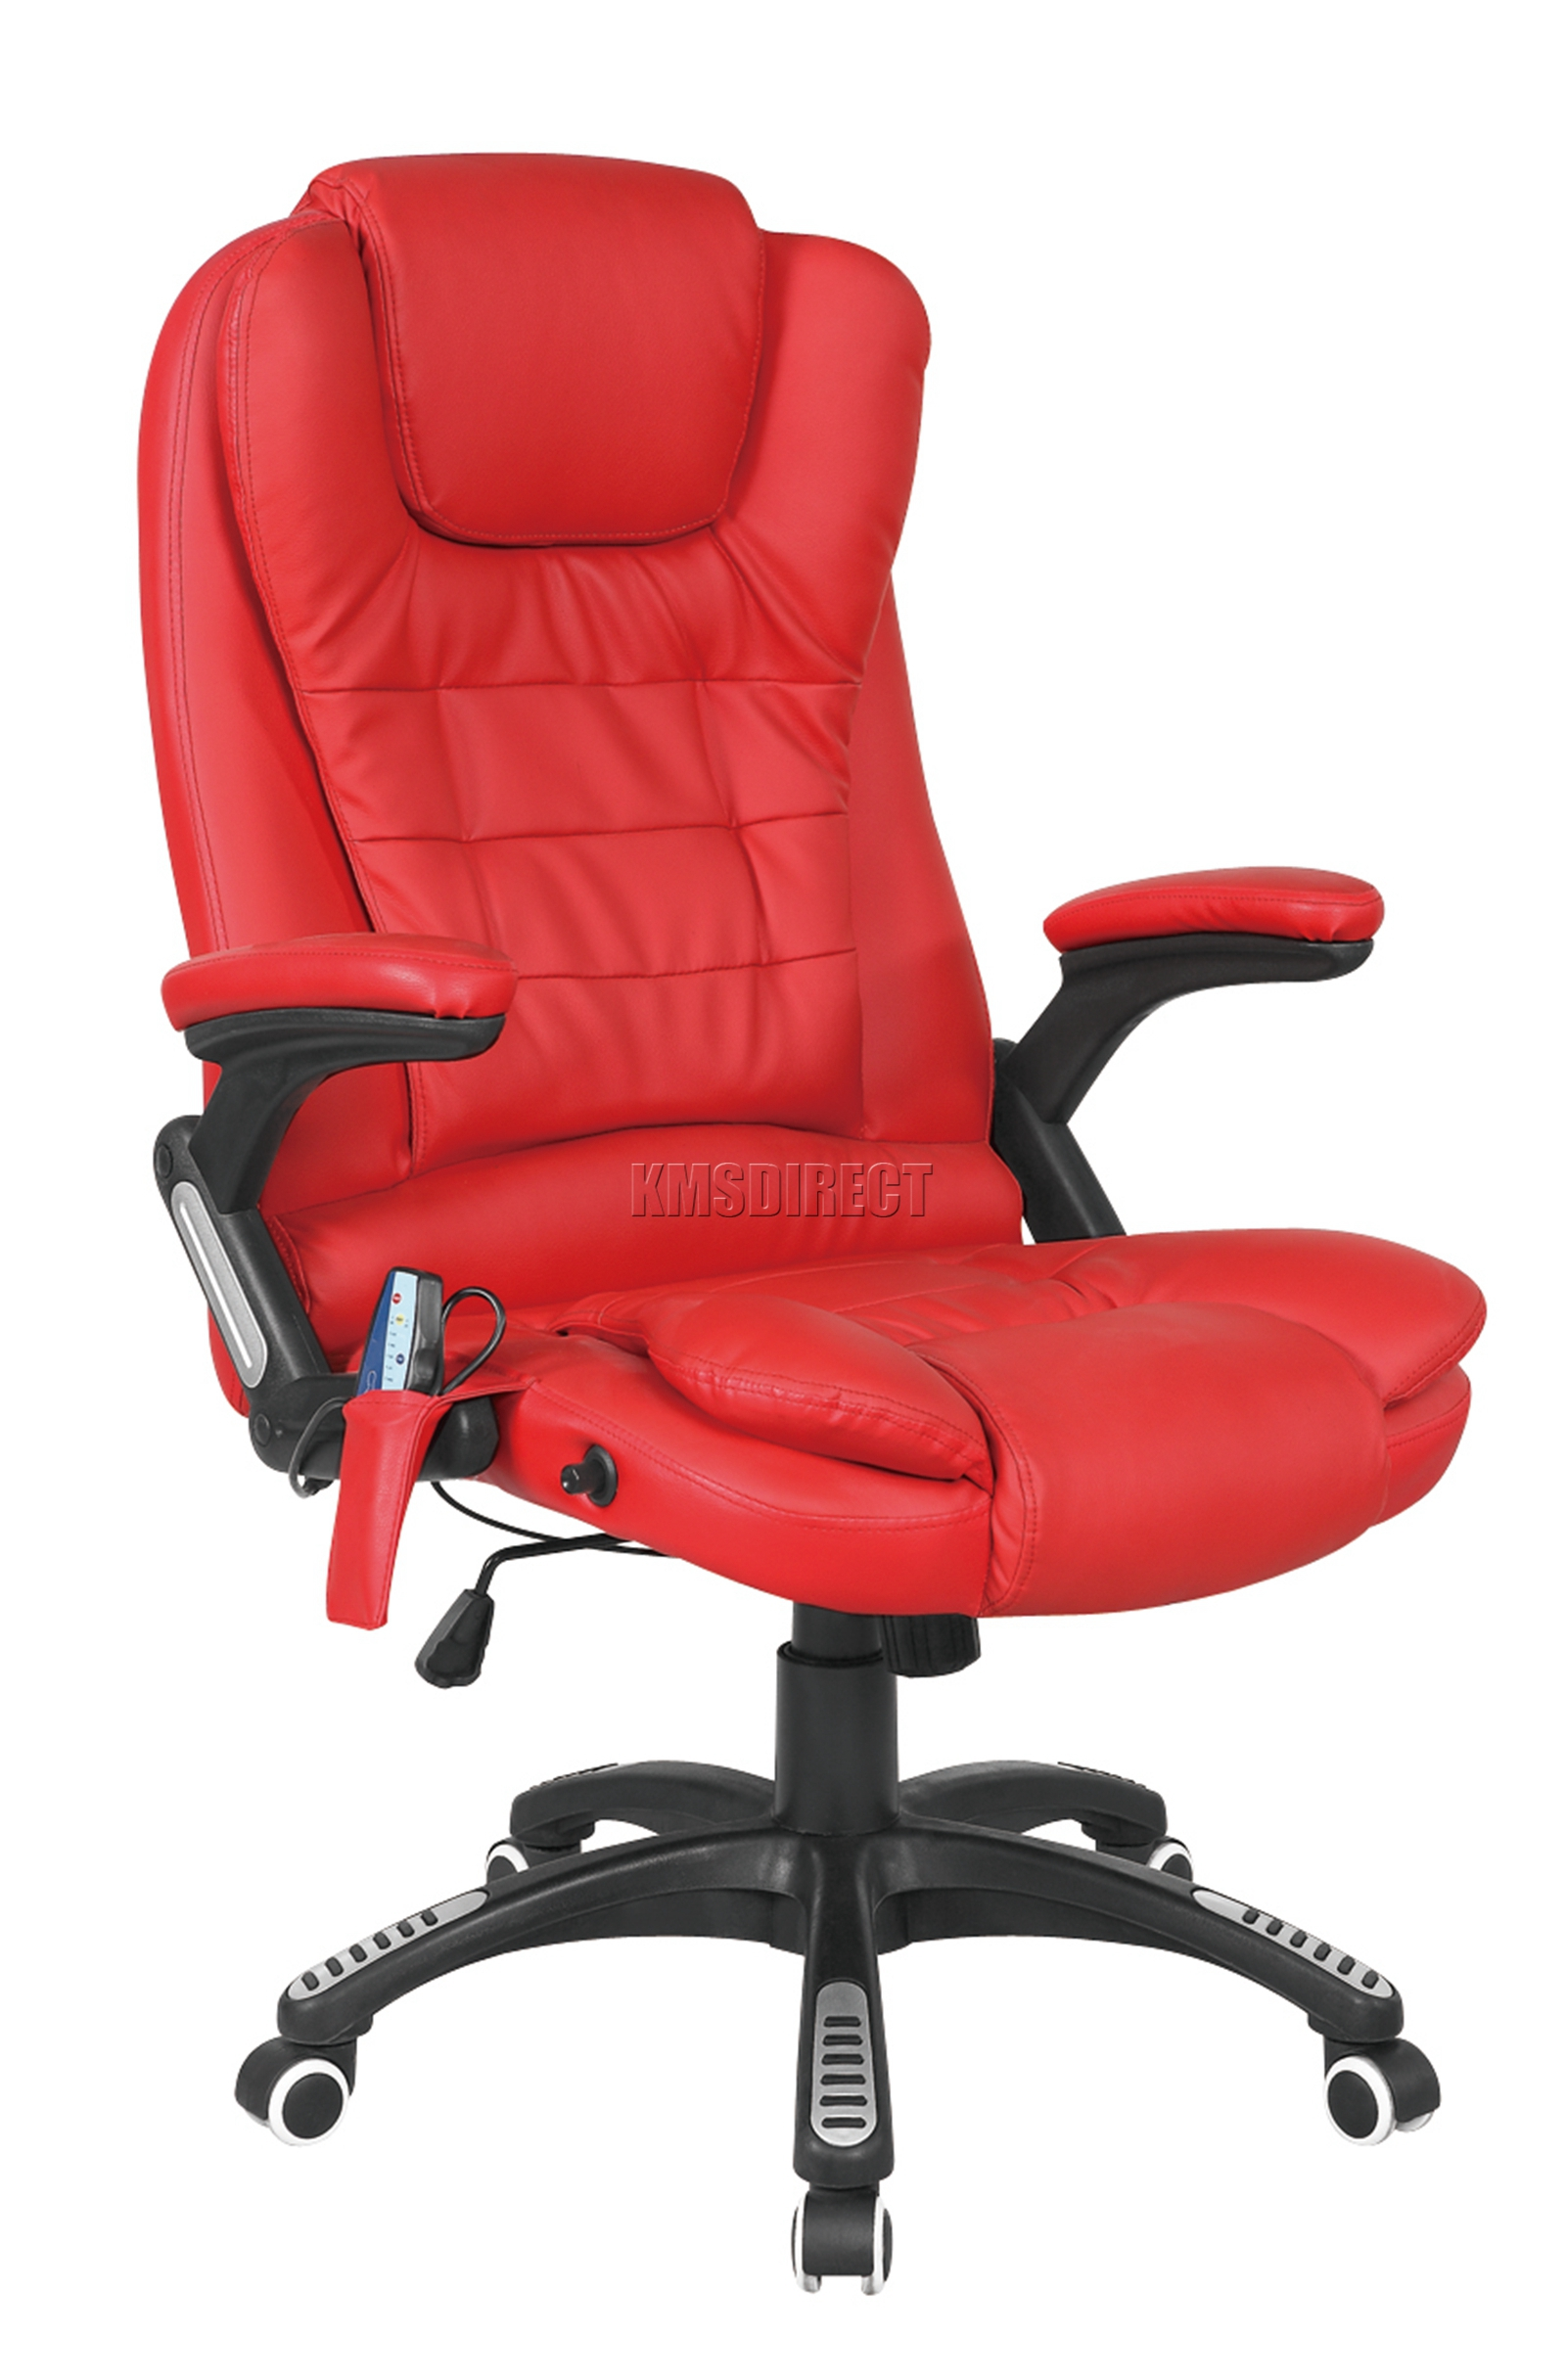 luxury leather office chair. Sentinel FoxHunter 8025 Leather 6 Point Massage Office Computer Chair Reclining Swivel Luxury O